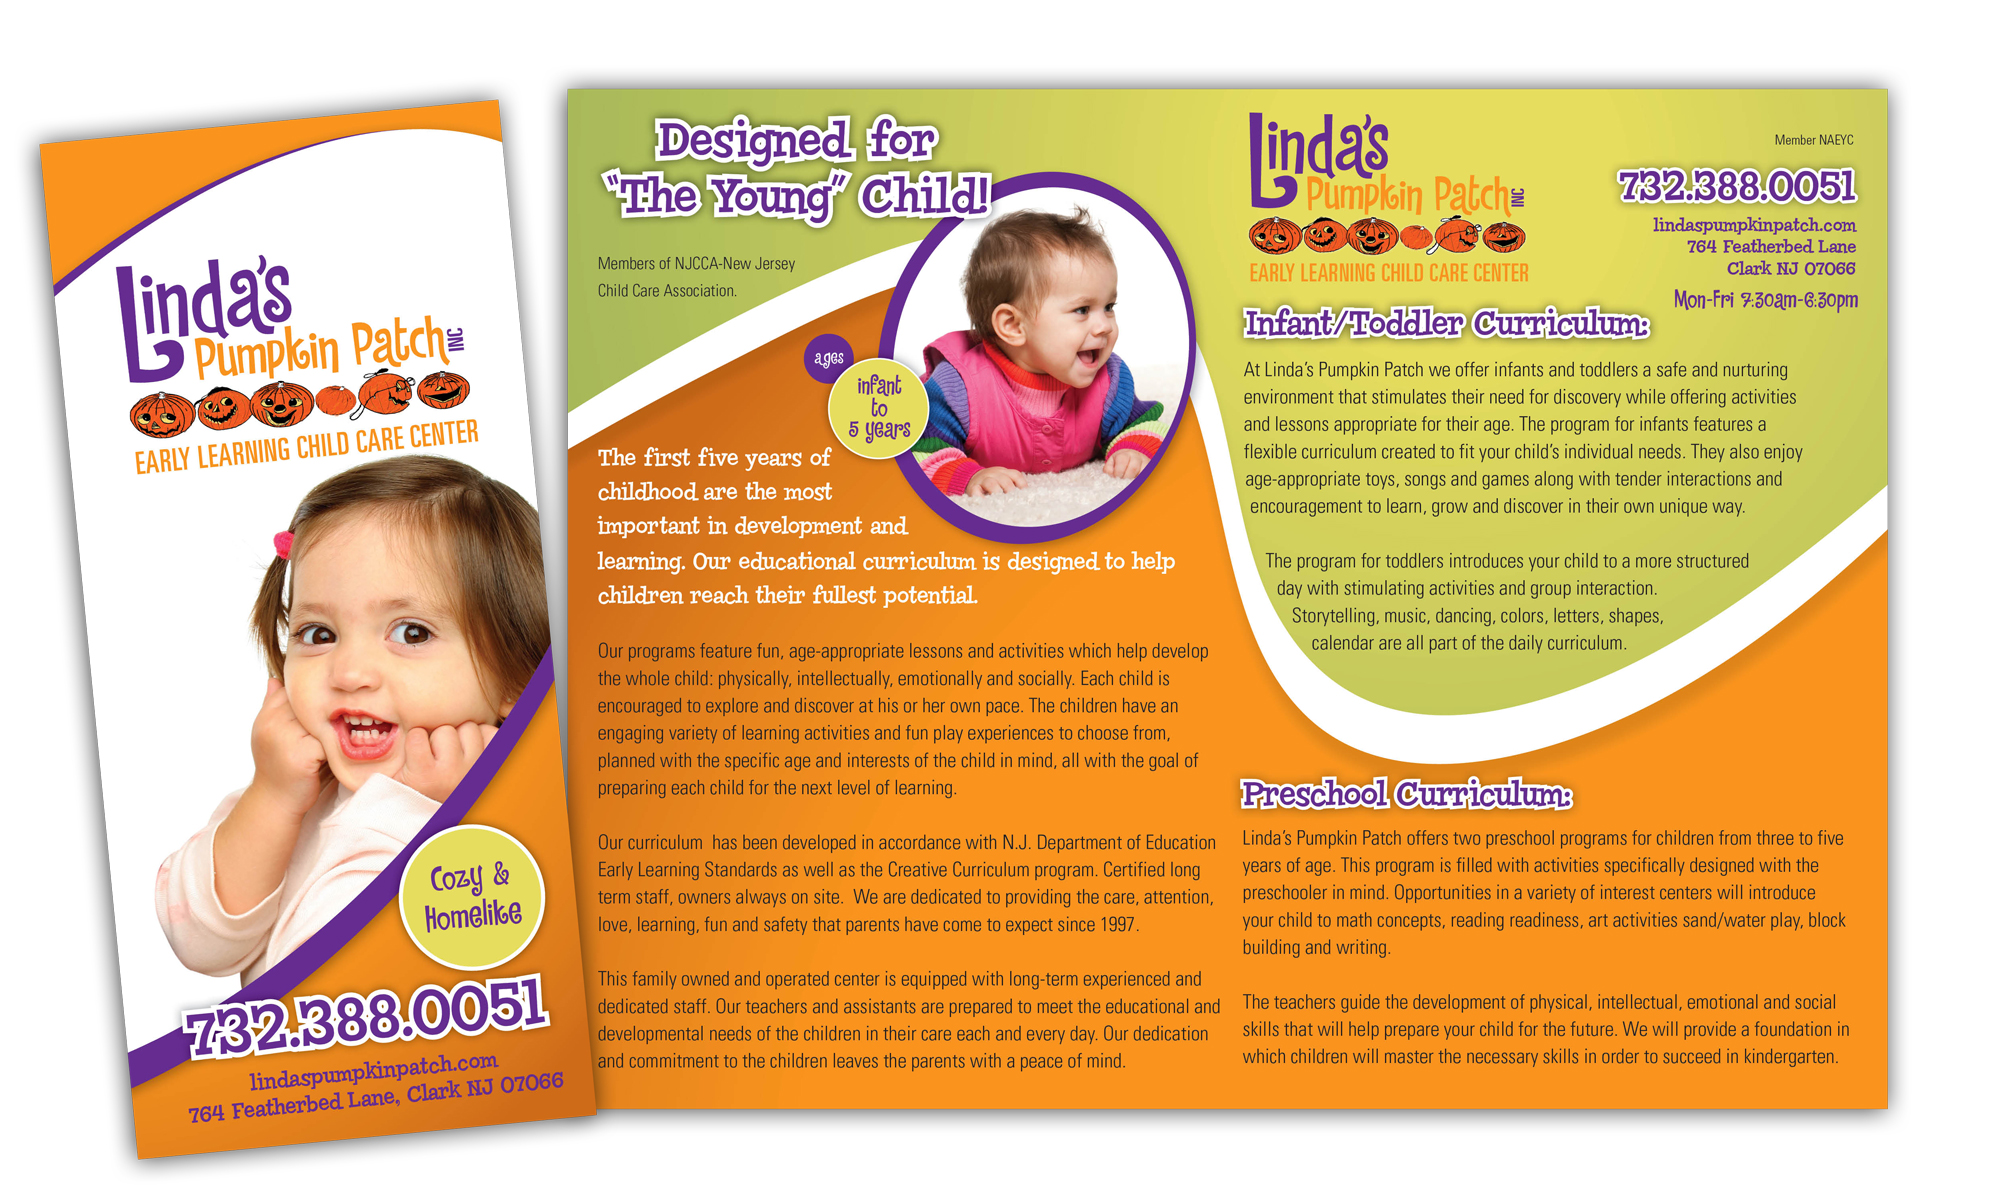 Daycare Brochure Ideal Vistalist Co